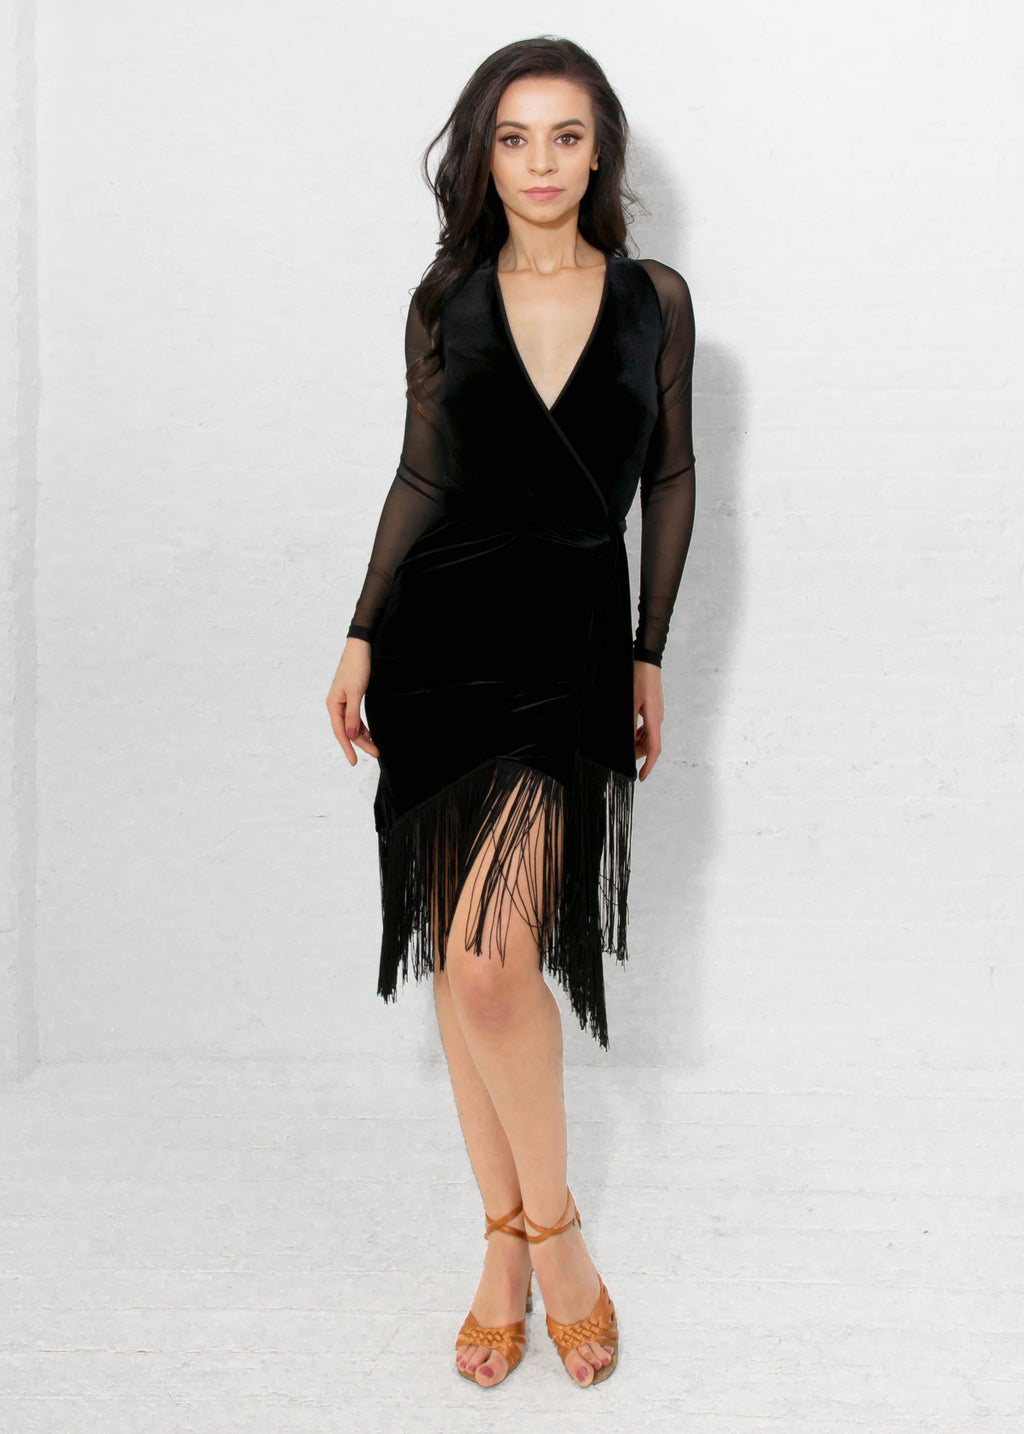 Miari wrap dress in black velvet has a separate waist tie belt and mesh long sleeves.